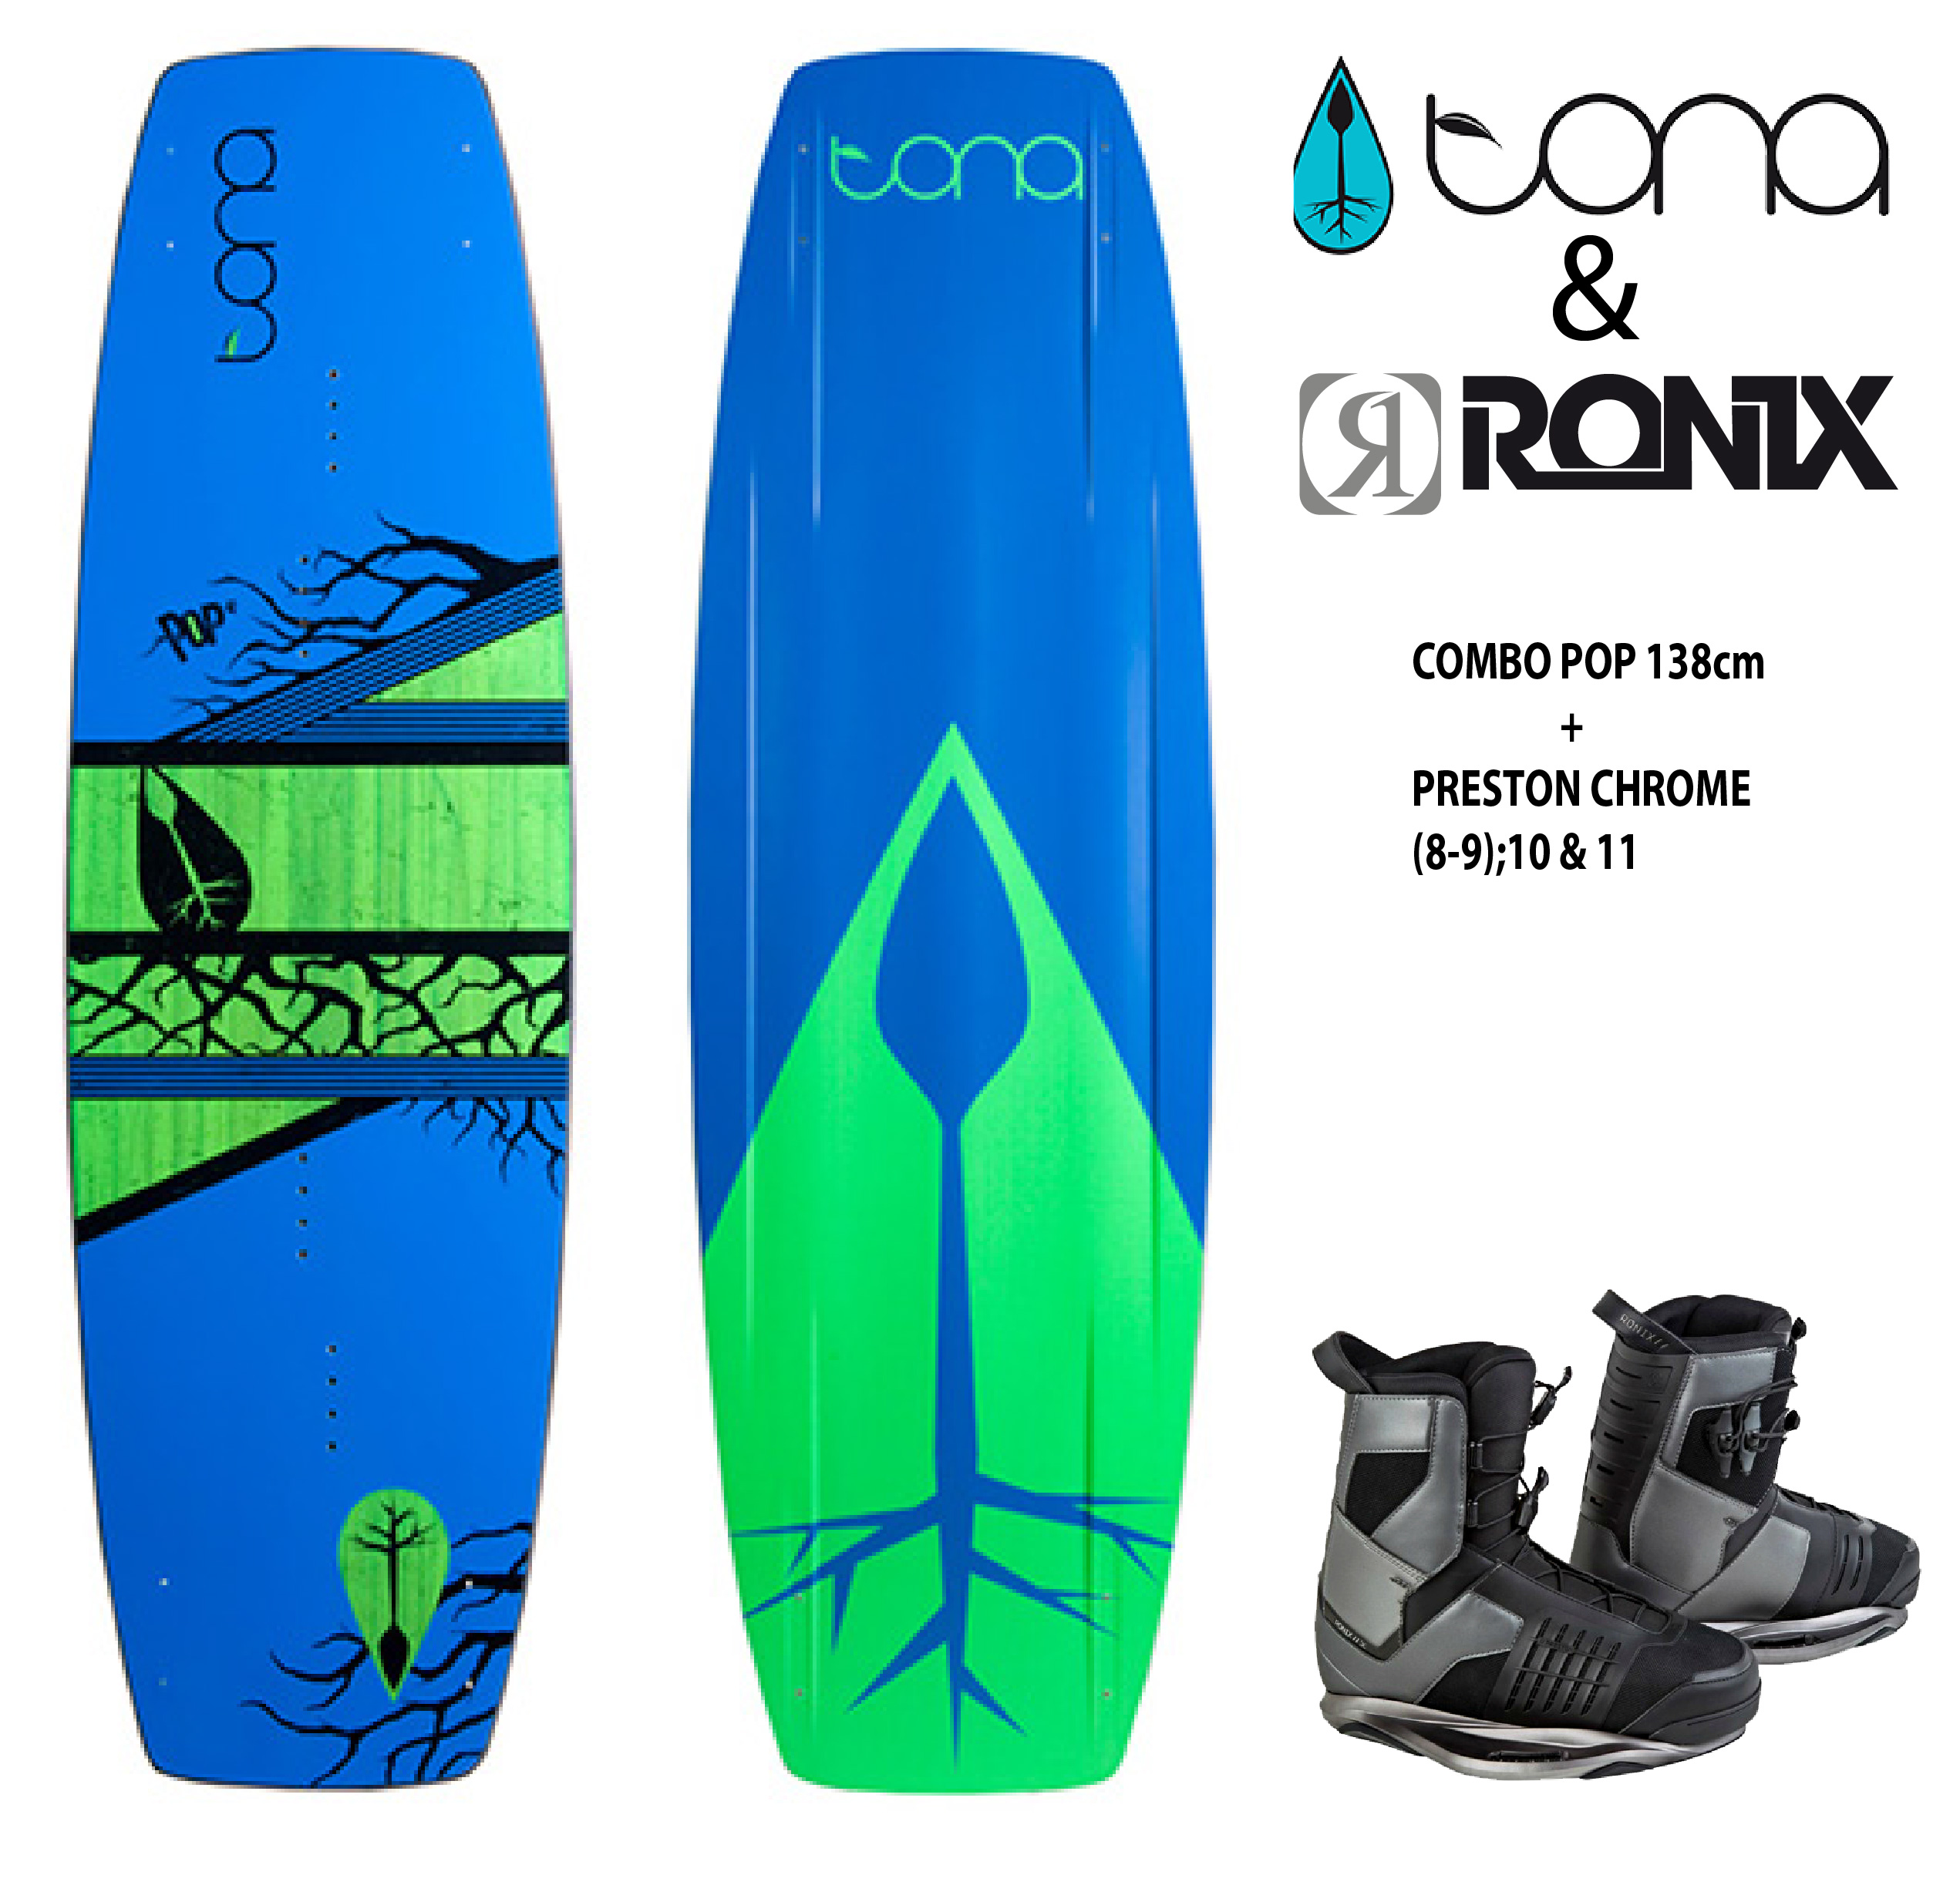 Combo Tona Pop 138cm c/Ronix Preston Chrome